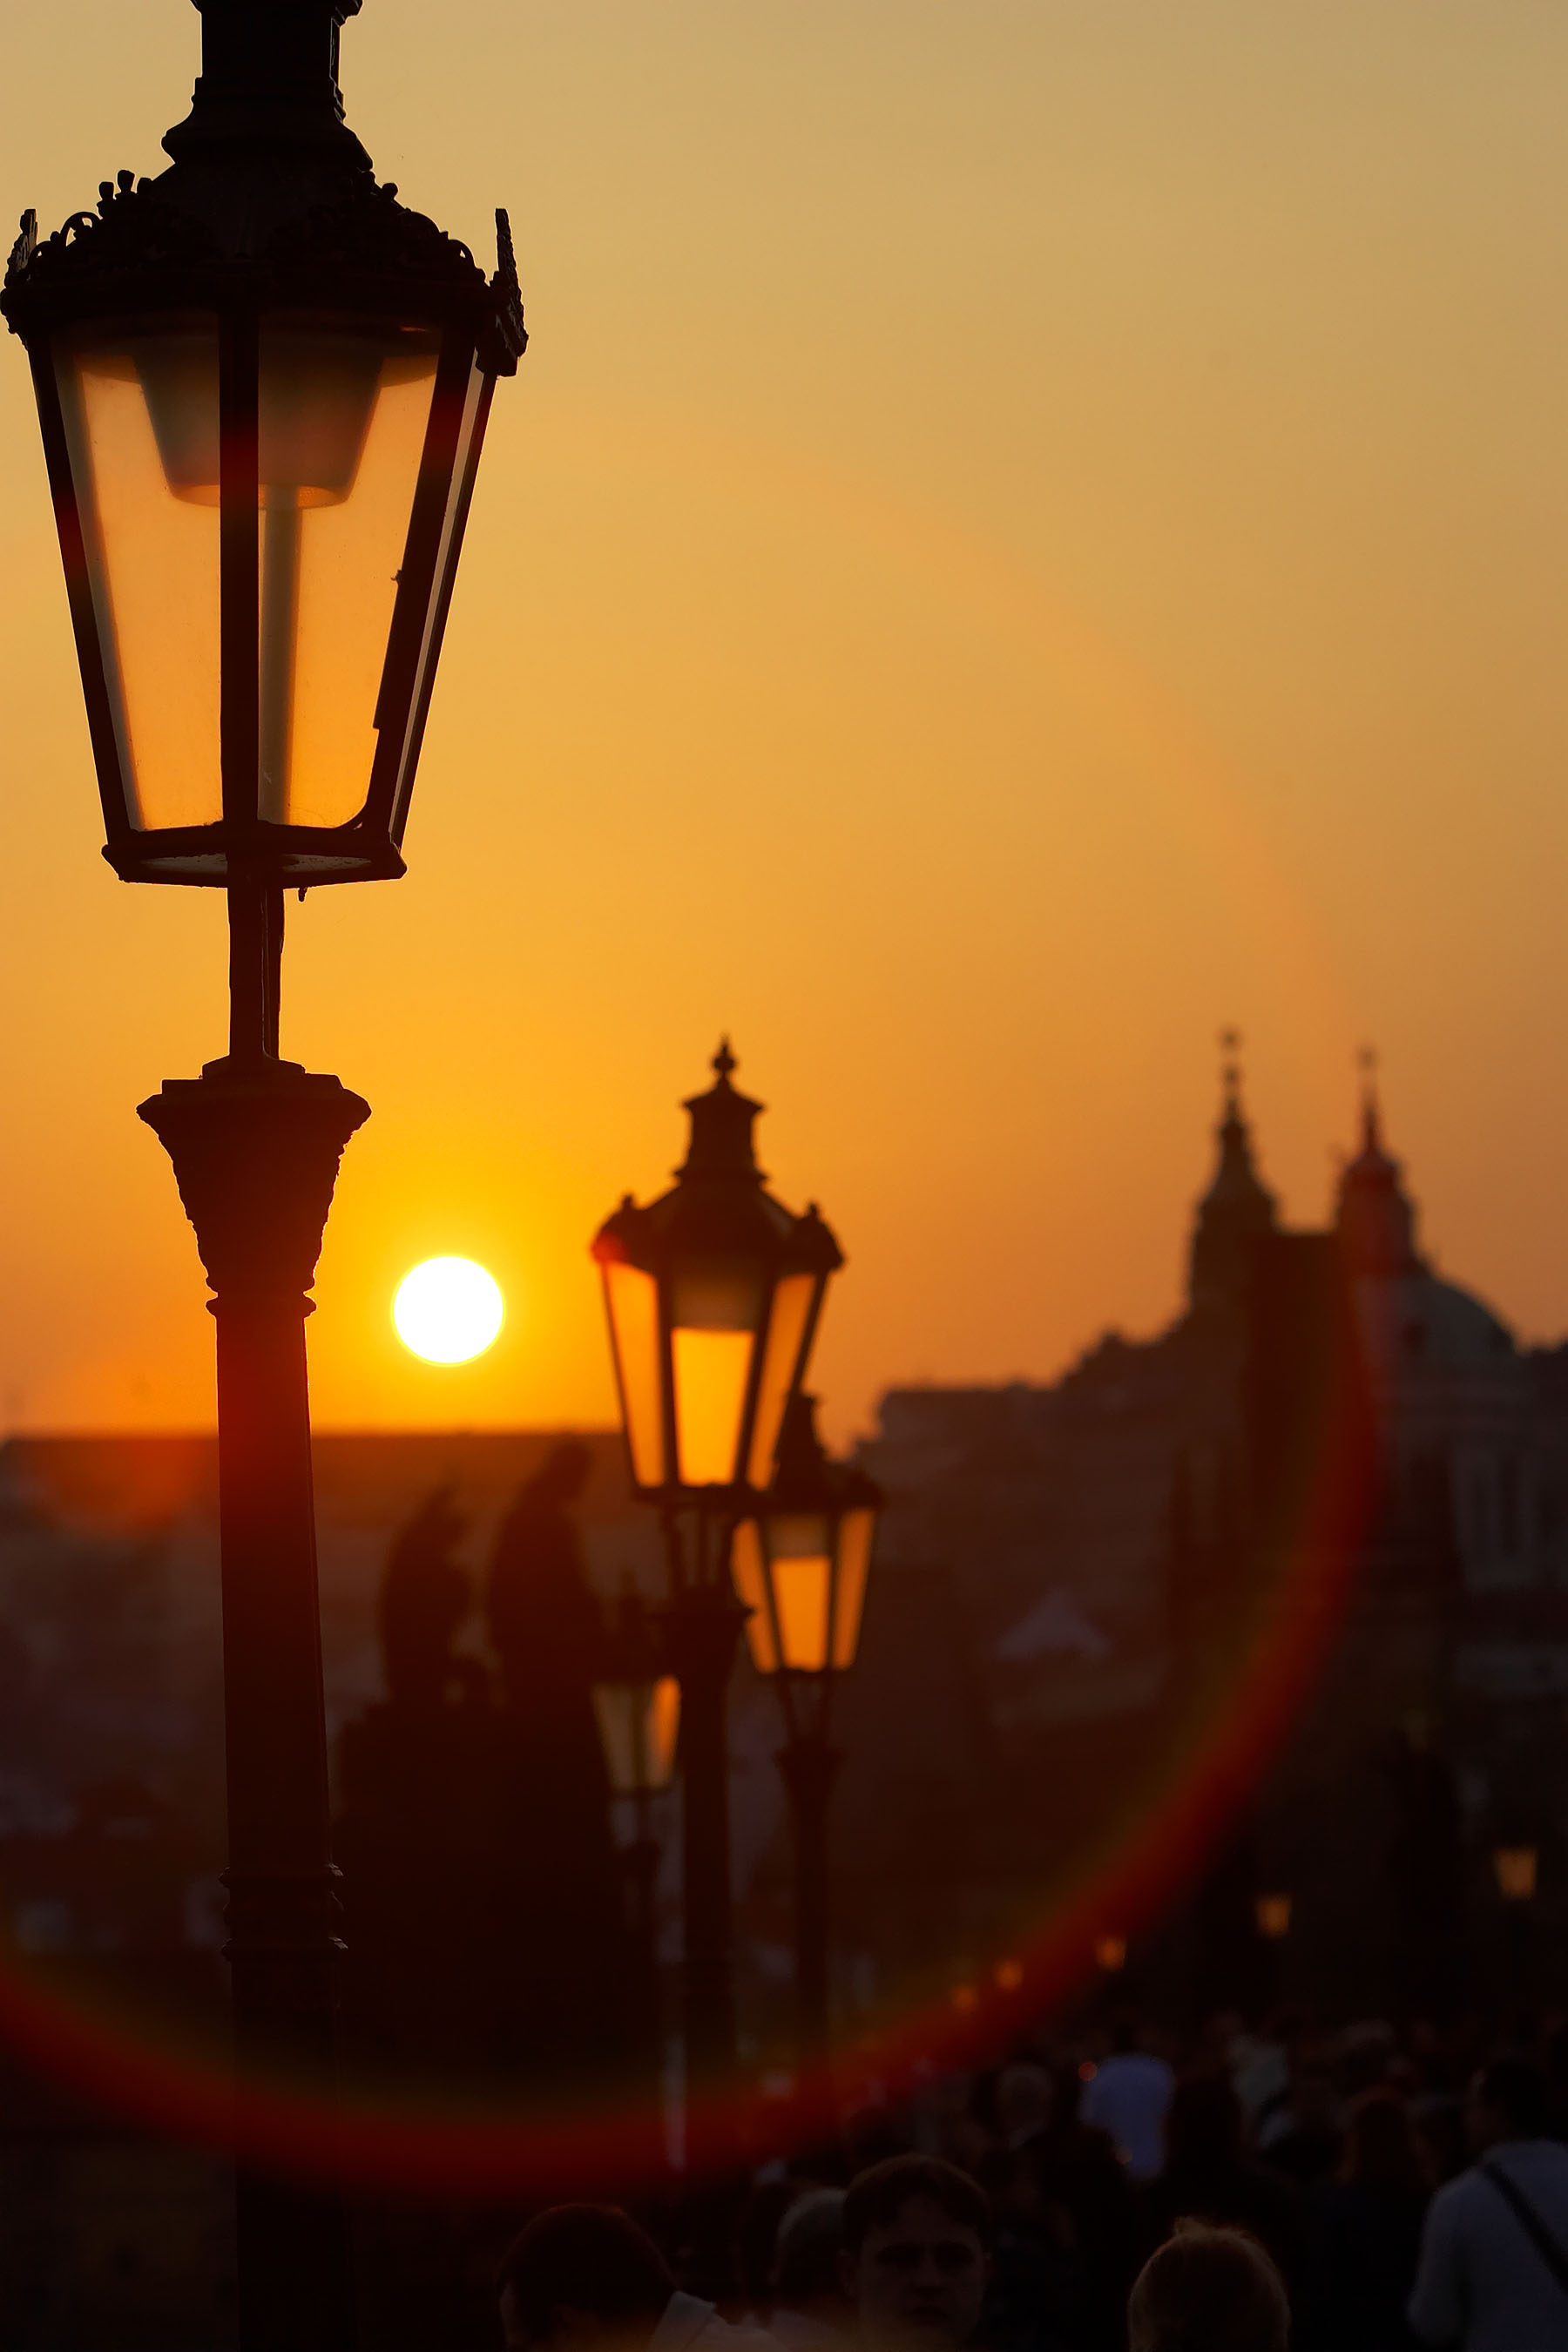 Lamp at dusk on the Charles Bridge over the Vlatva River in Prague, Czech Republic with Prague Castle in background